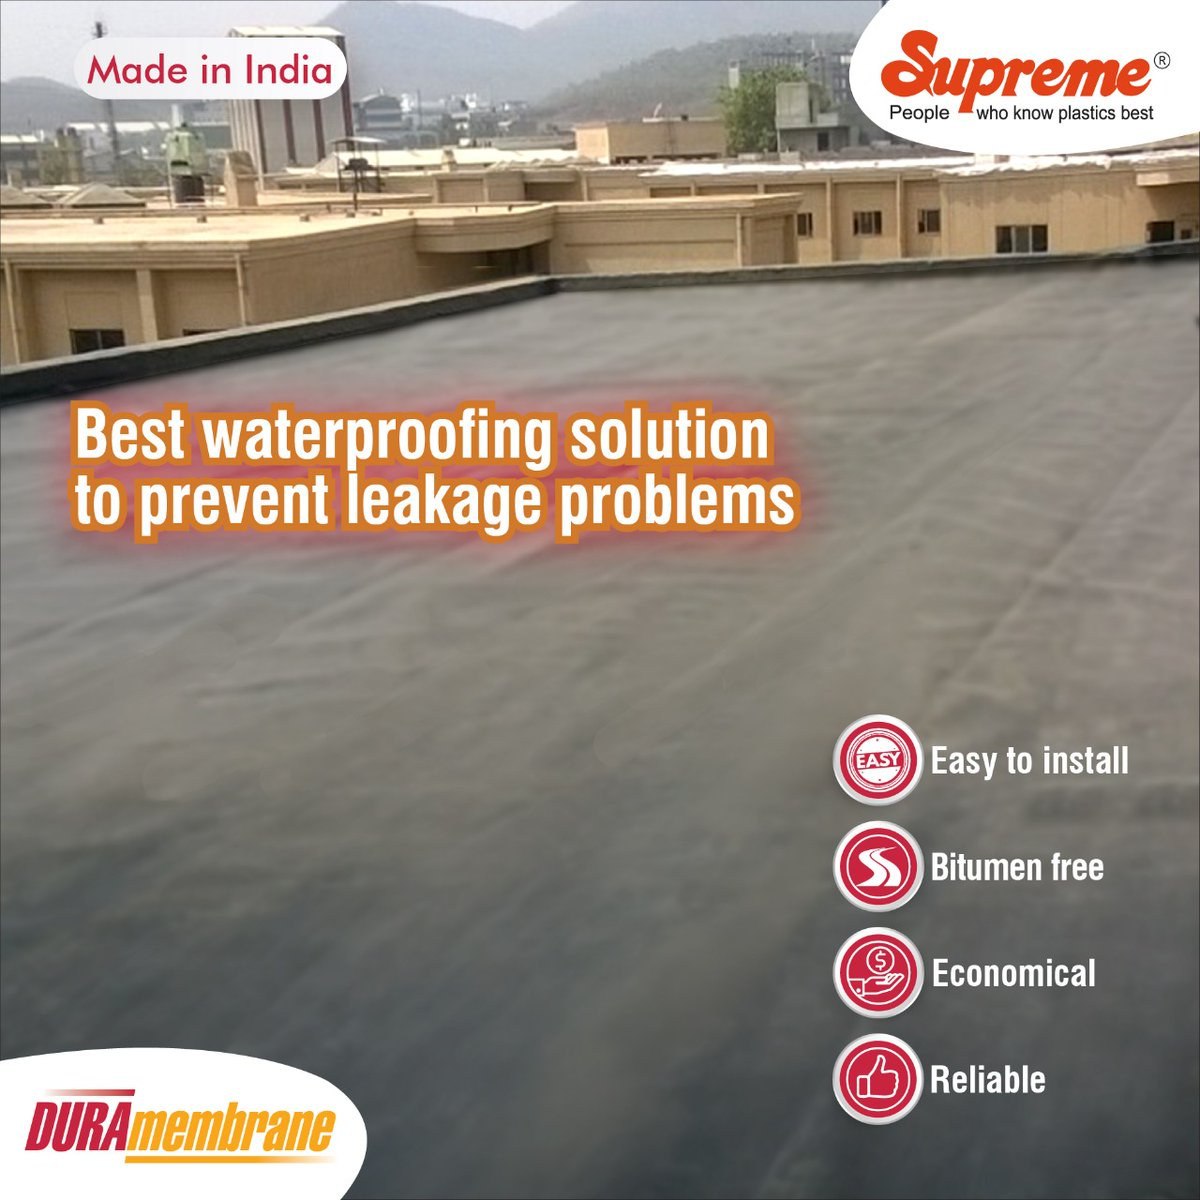 DURAmembrane - cost-effective solution for waterproofing of basements and roofs to prevent leakage problems. #Supremeindustries #DURA #DURAmembrane #waterproofingsolution